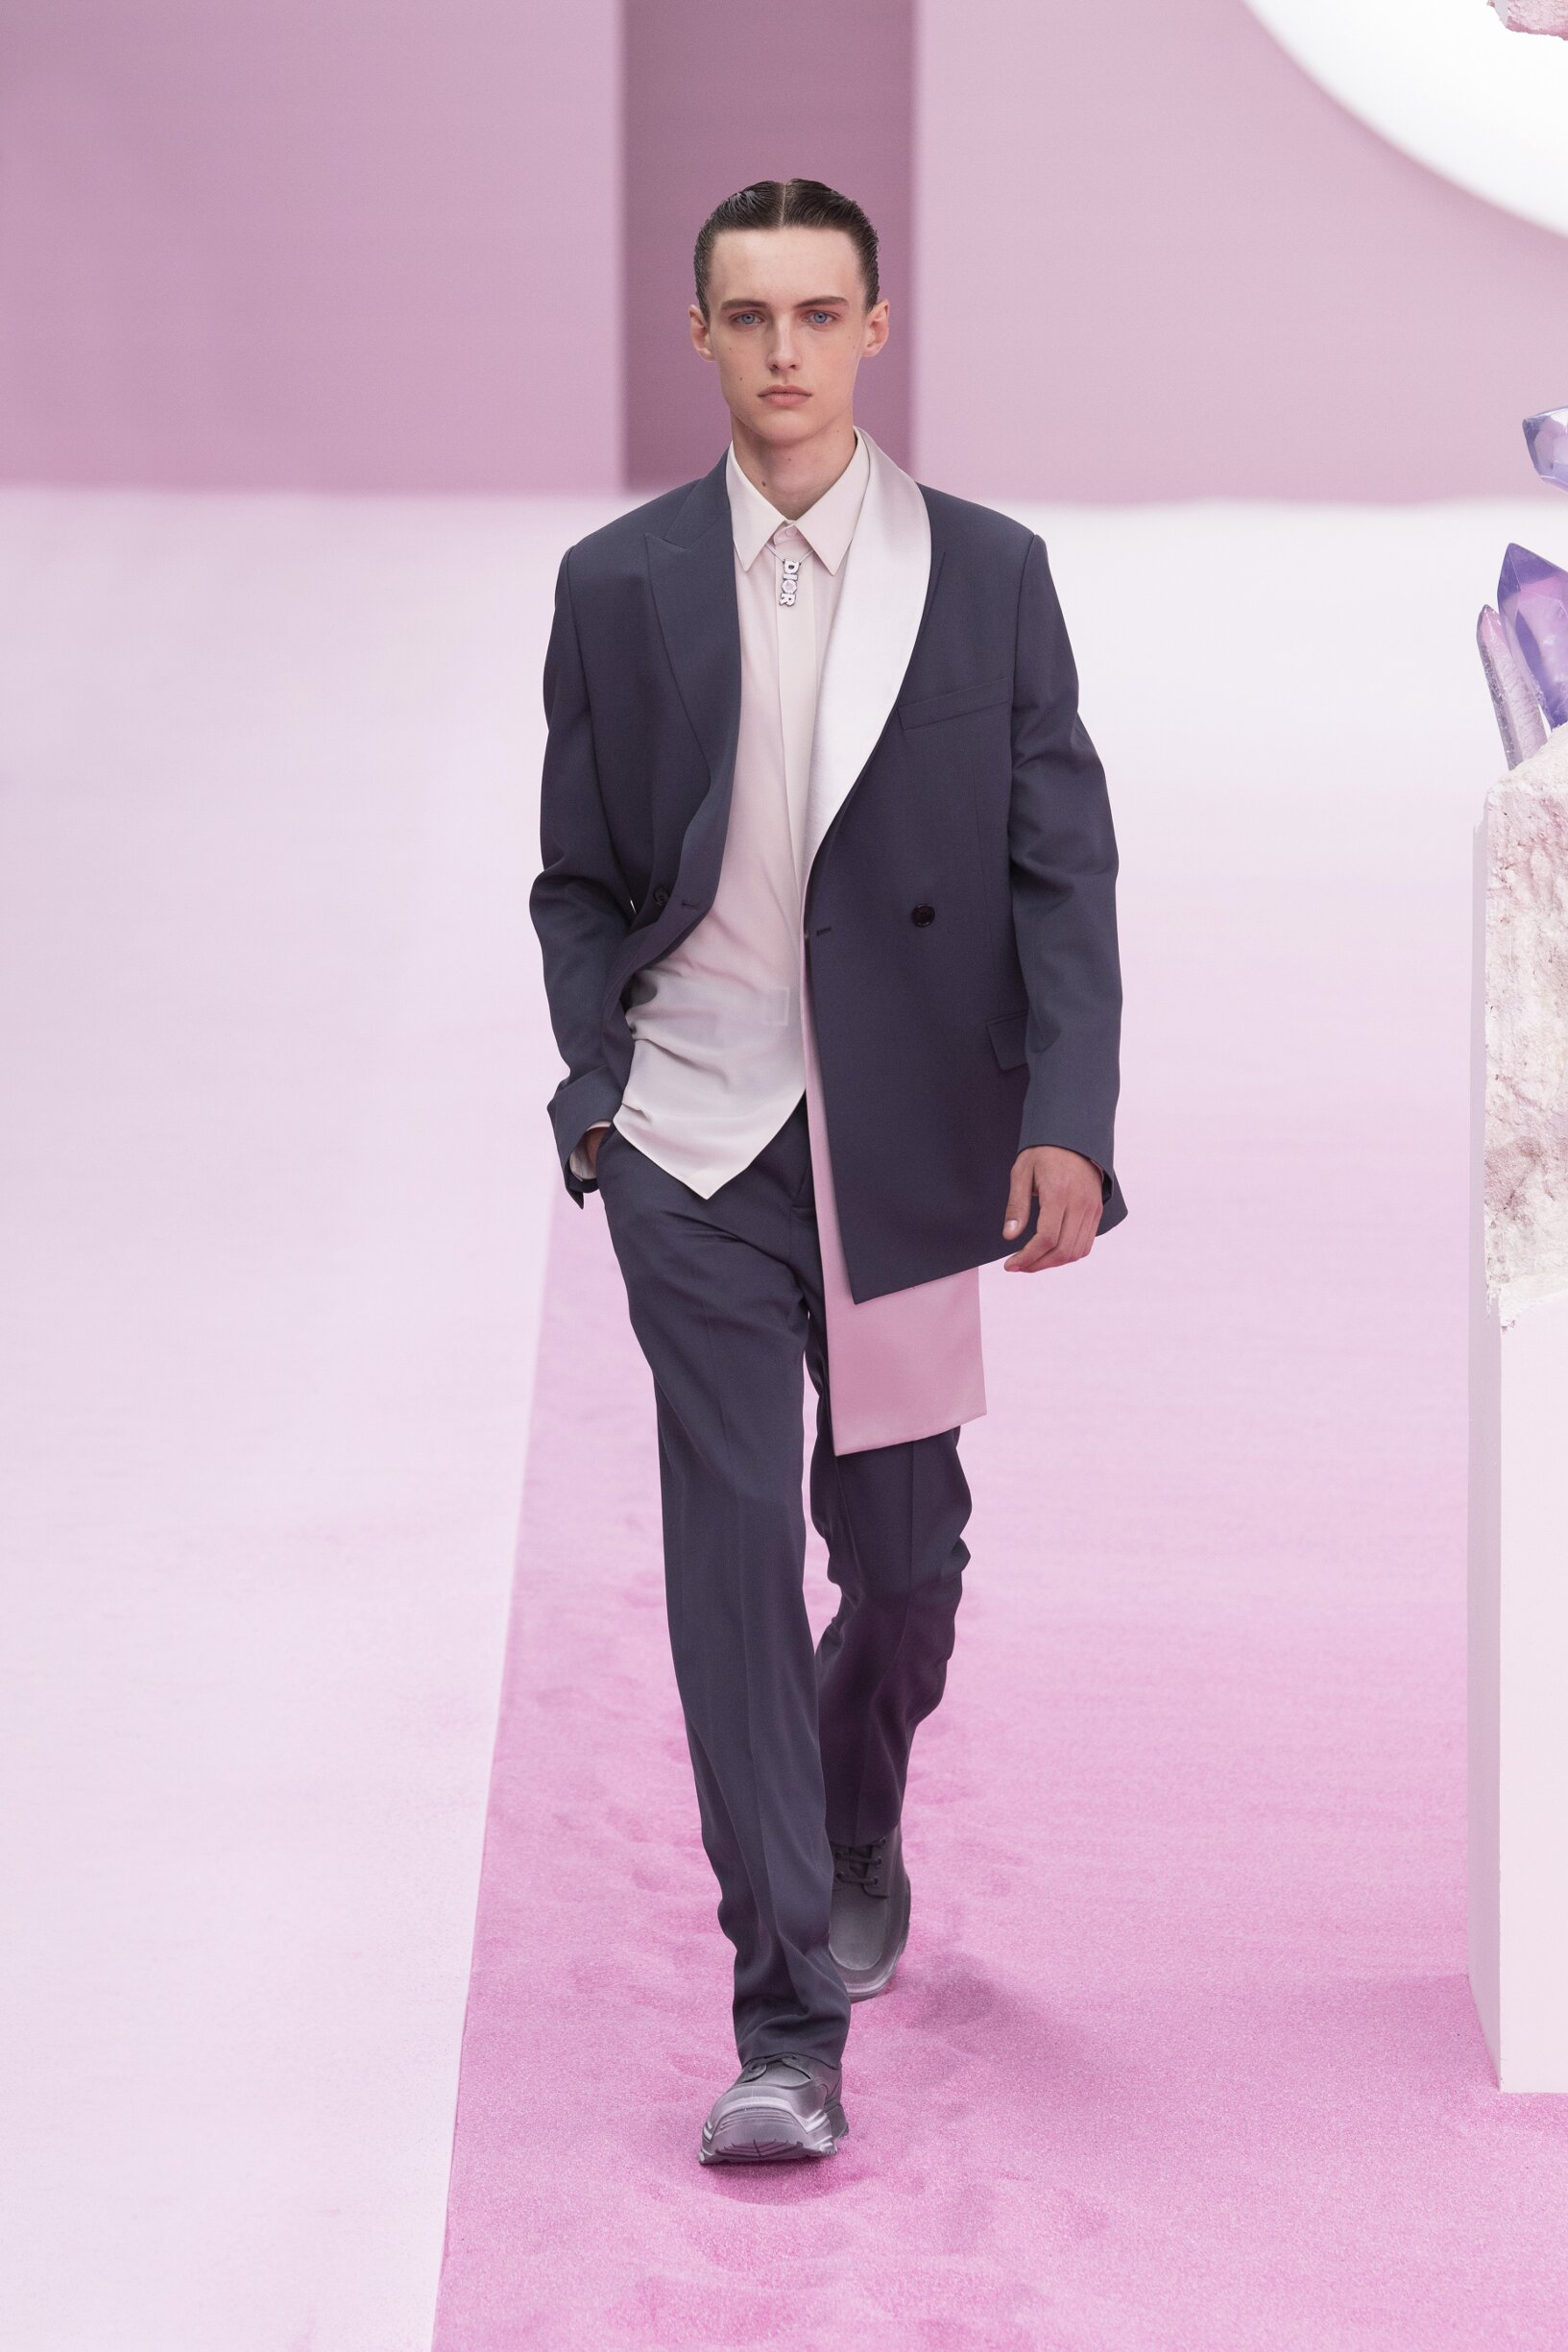 Man SS 2020 Dior Show Paris Fashion Week